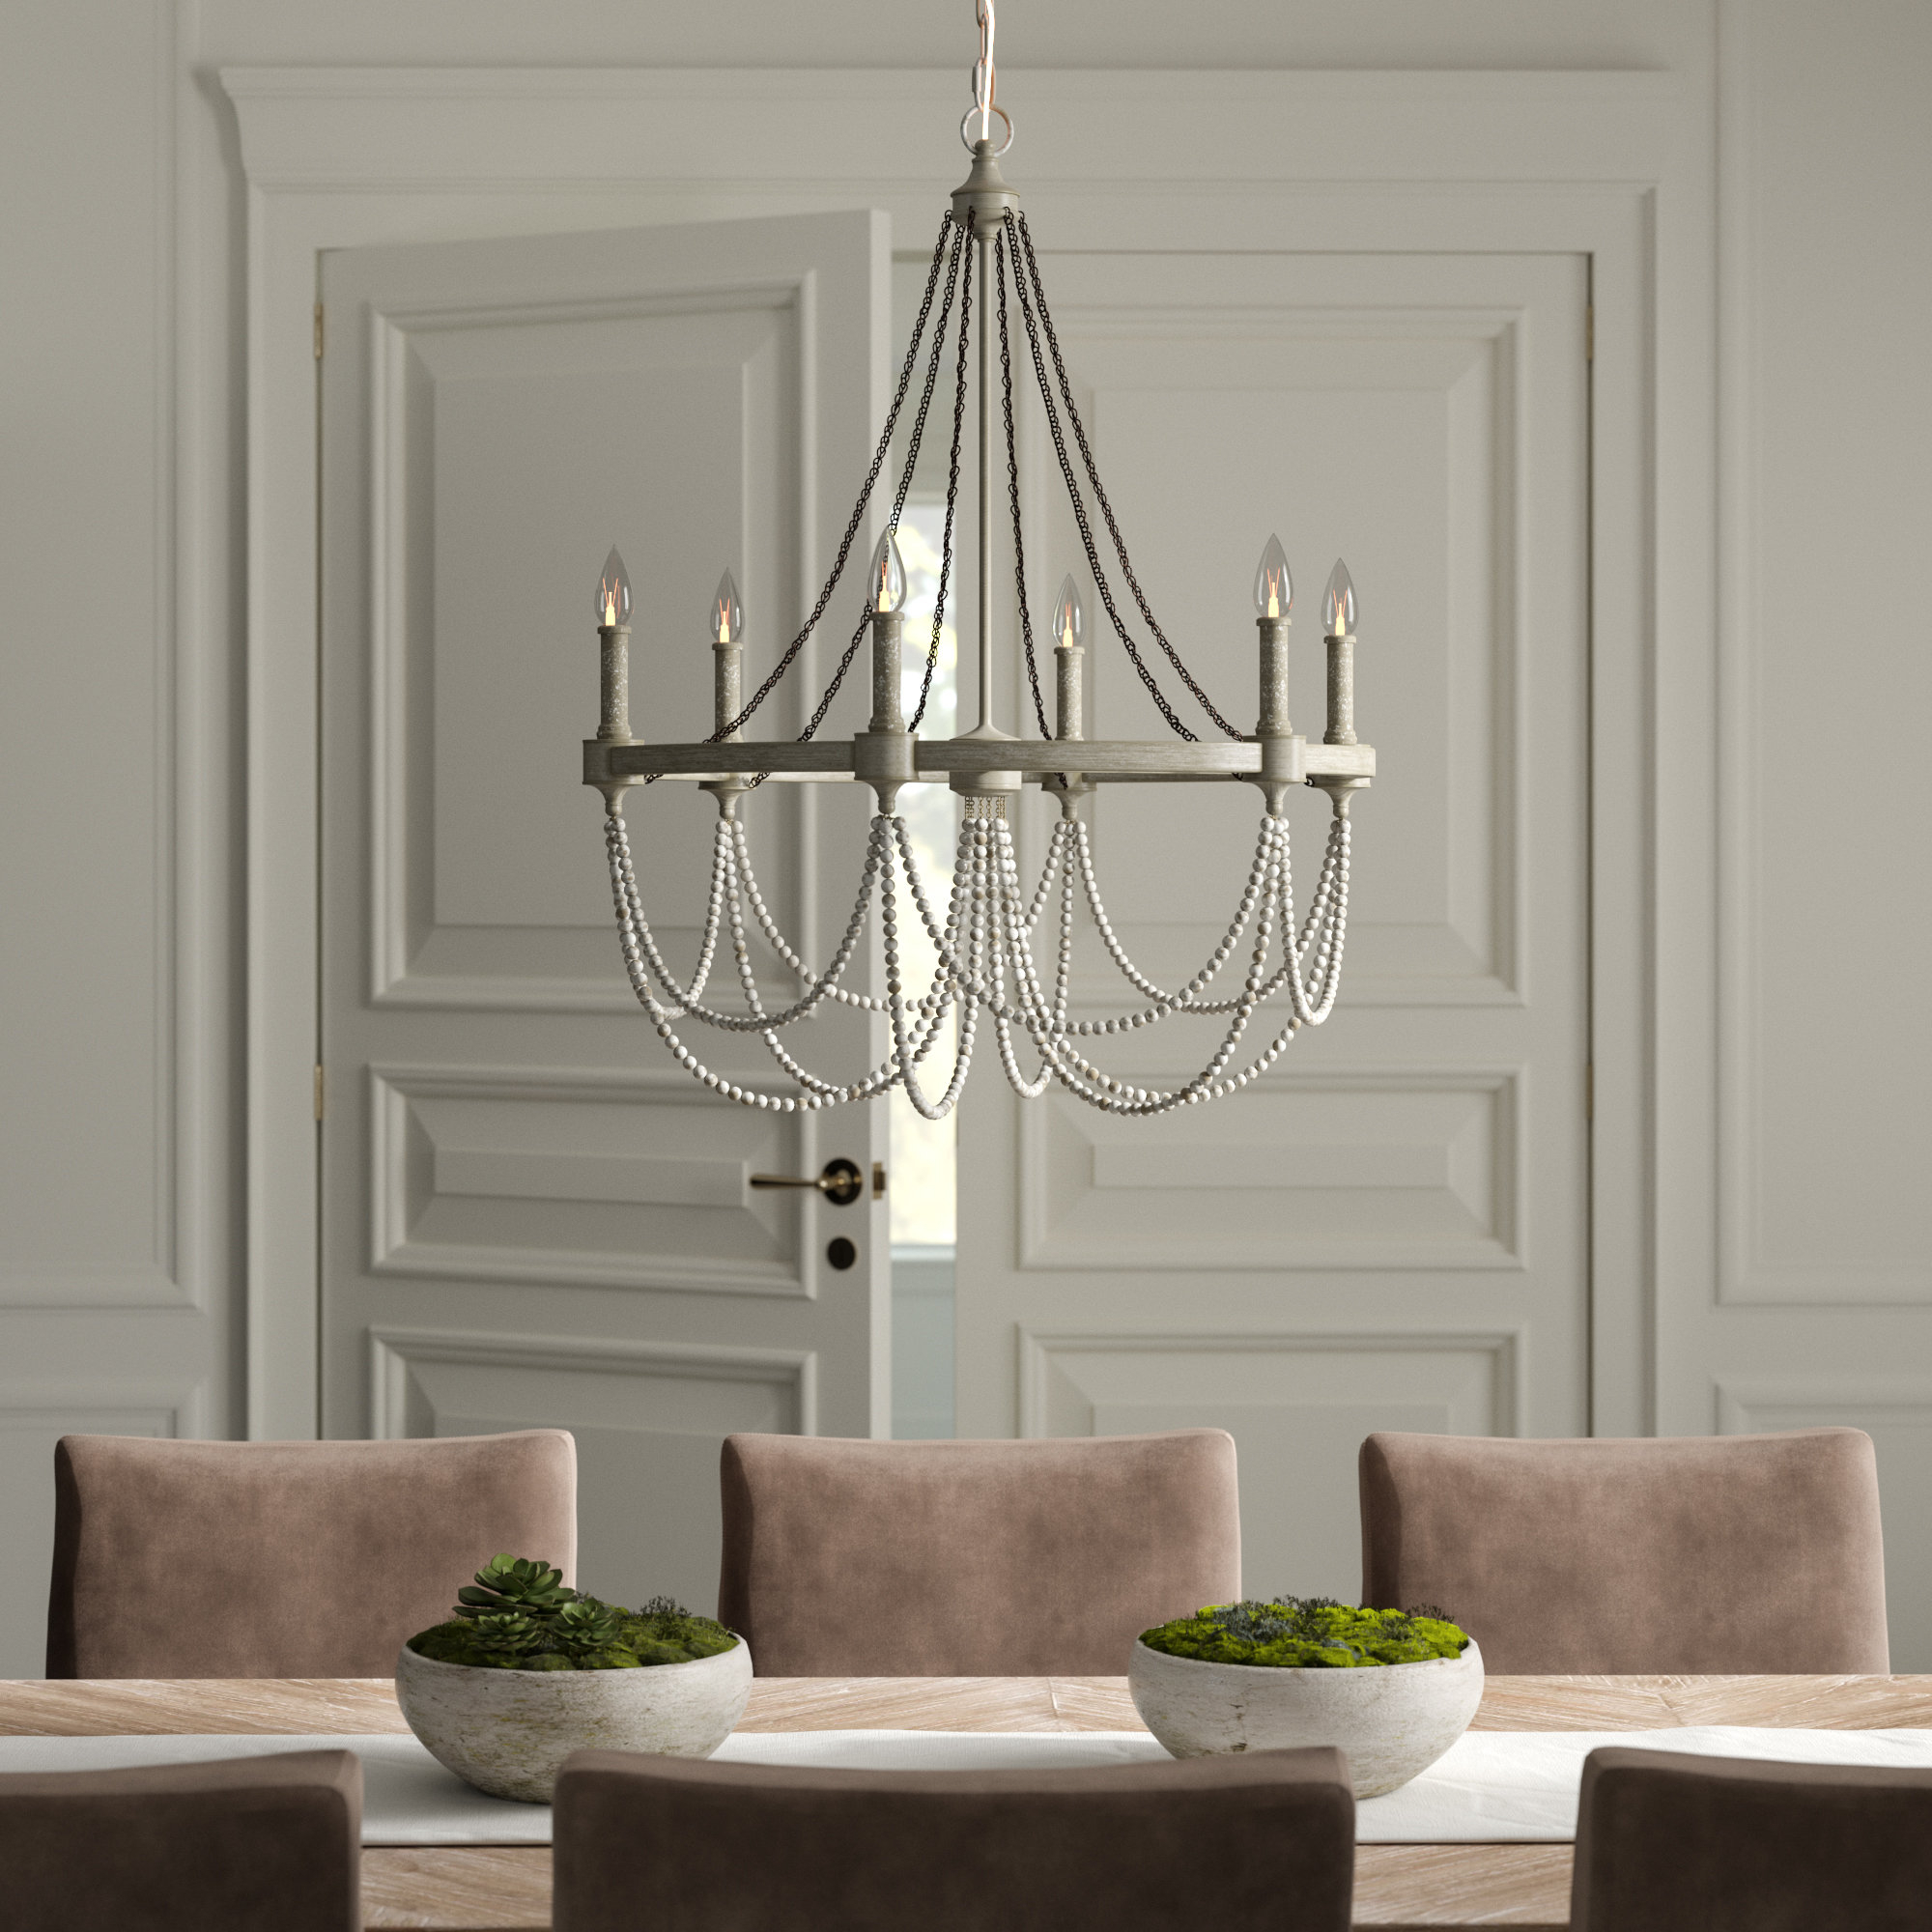 Fitzgibbon 6-Light Candle Style Chandelier with Watford 6-Light Candle Style Chandeliers (Image 10 of 30)